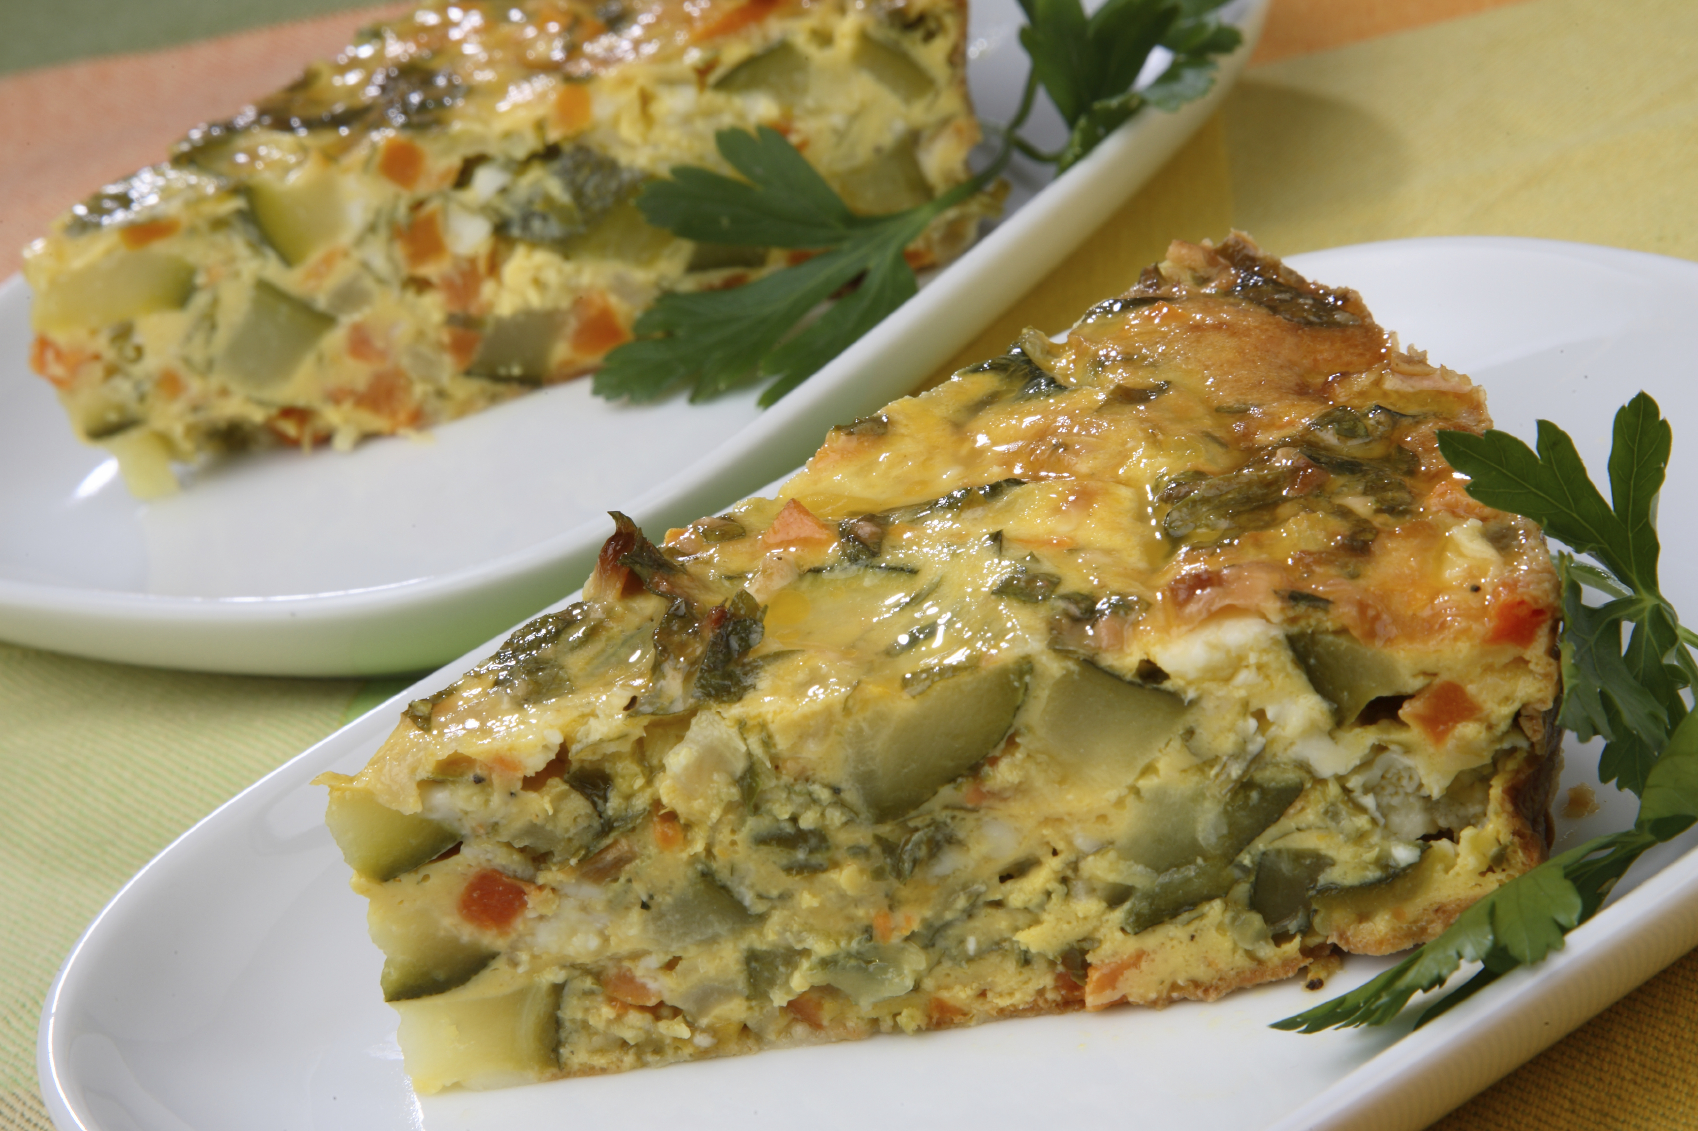 Vegetable pie without pastry